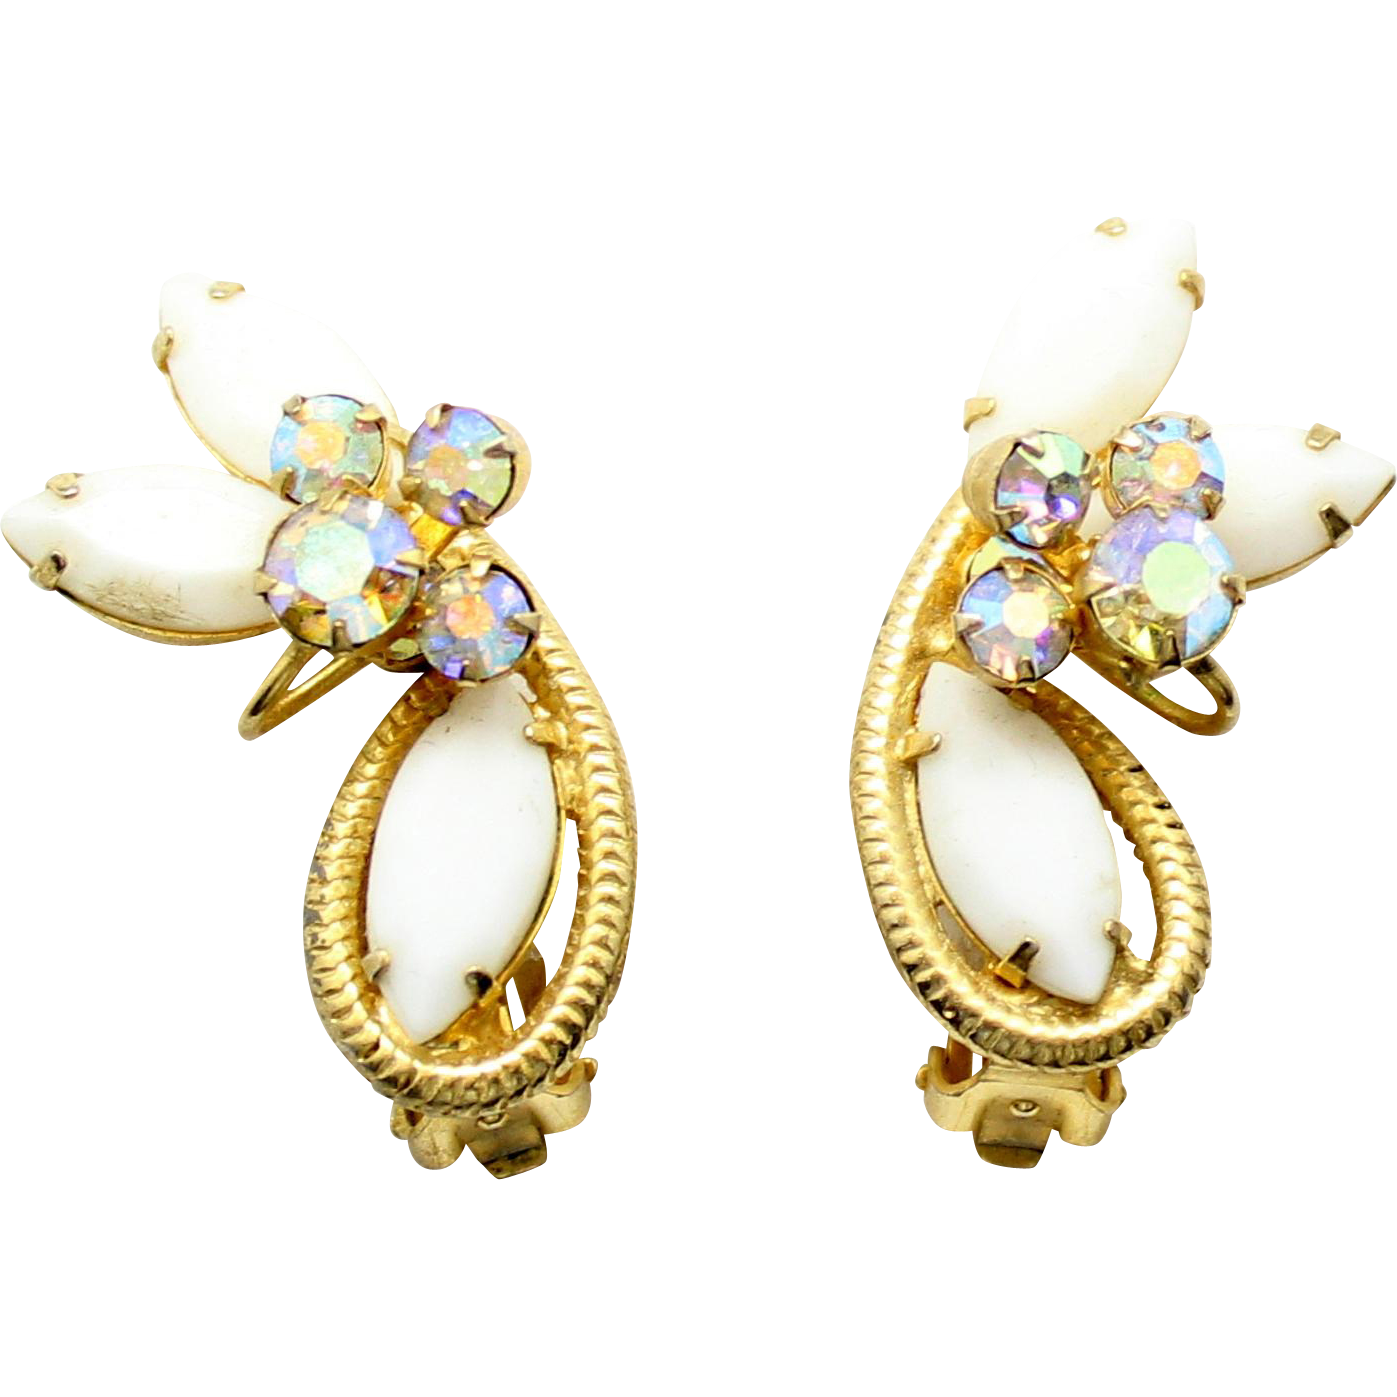 prong detail vintage all s twist is hand gold work with maiden edges young of cameo very art around mounting carved white nice in this earrings img fine drop shell the a pair price true